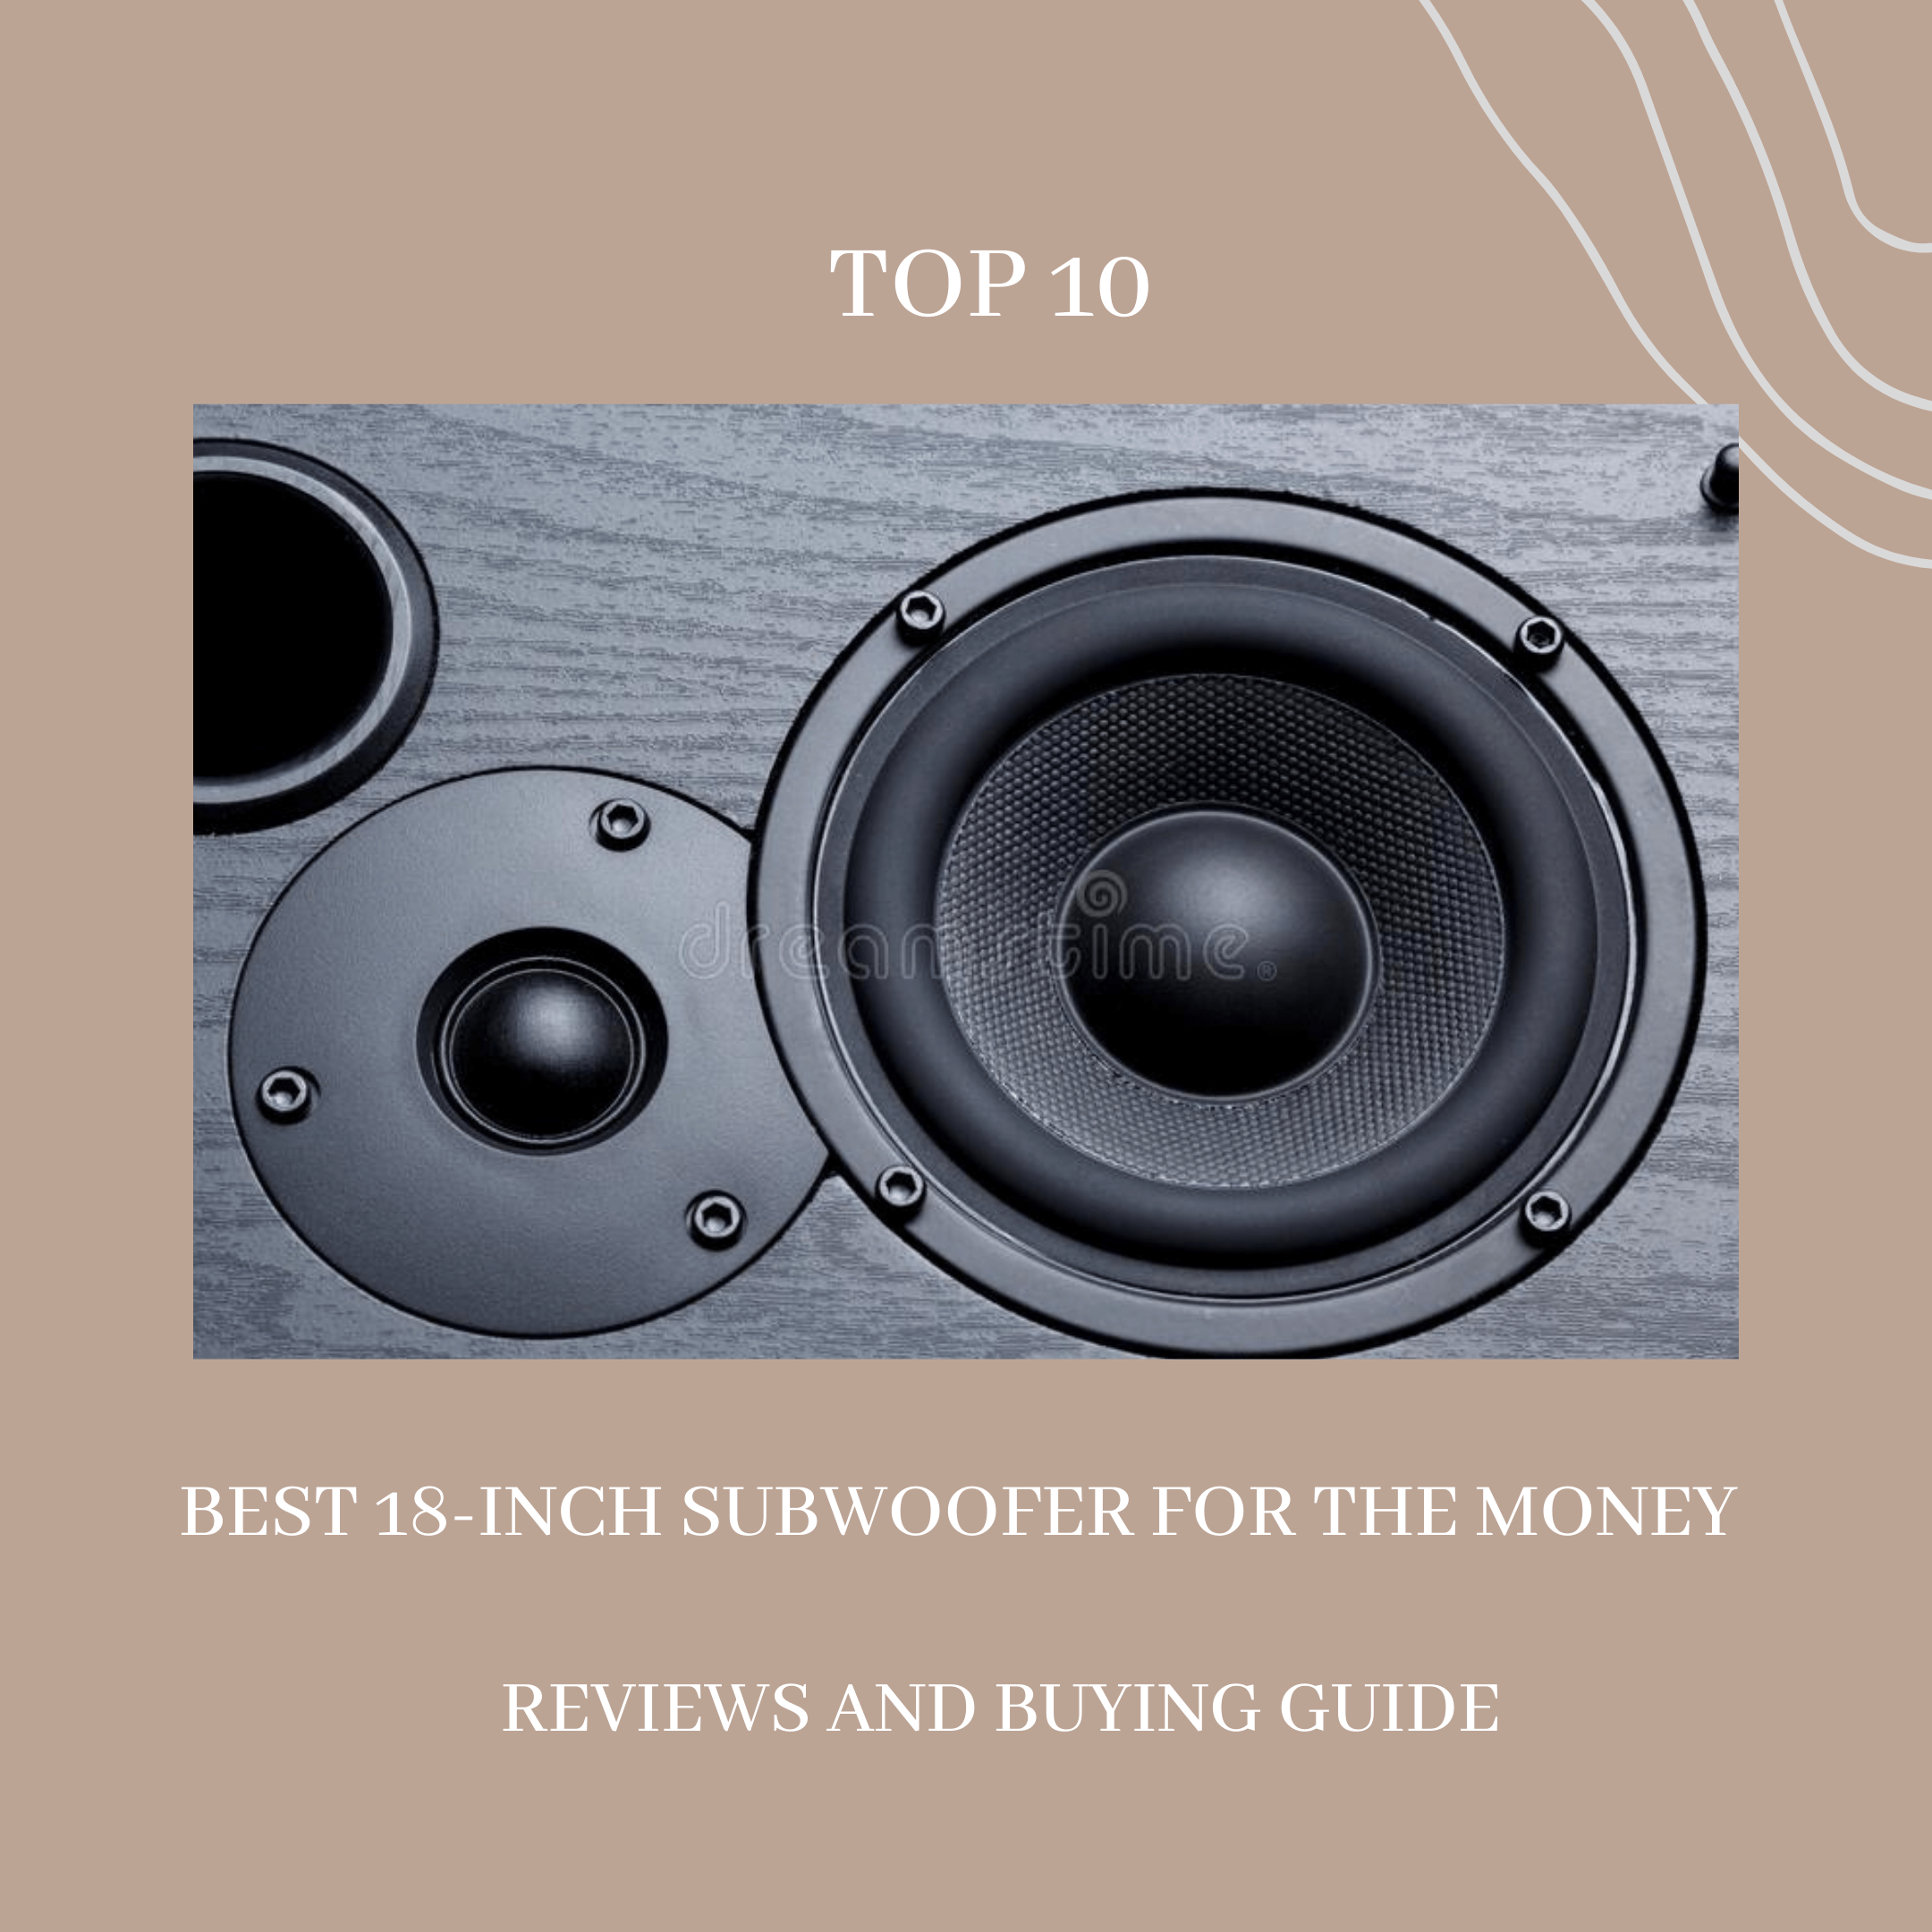 Best 18-inch Subwoofer for the Money